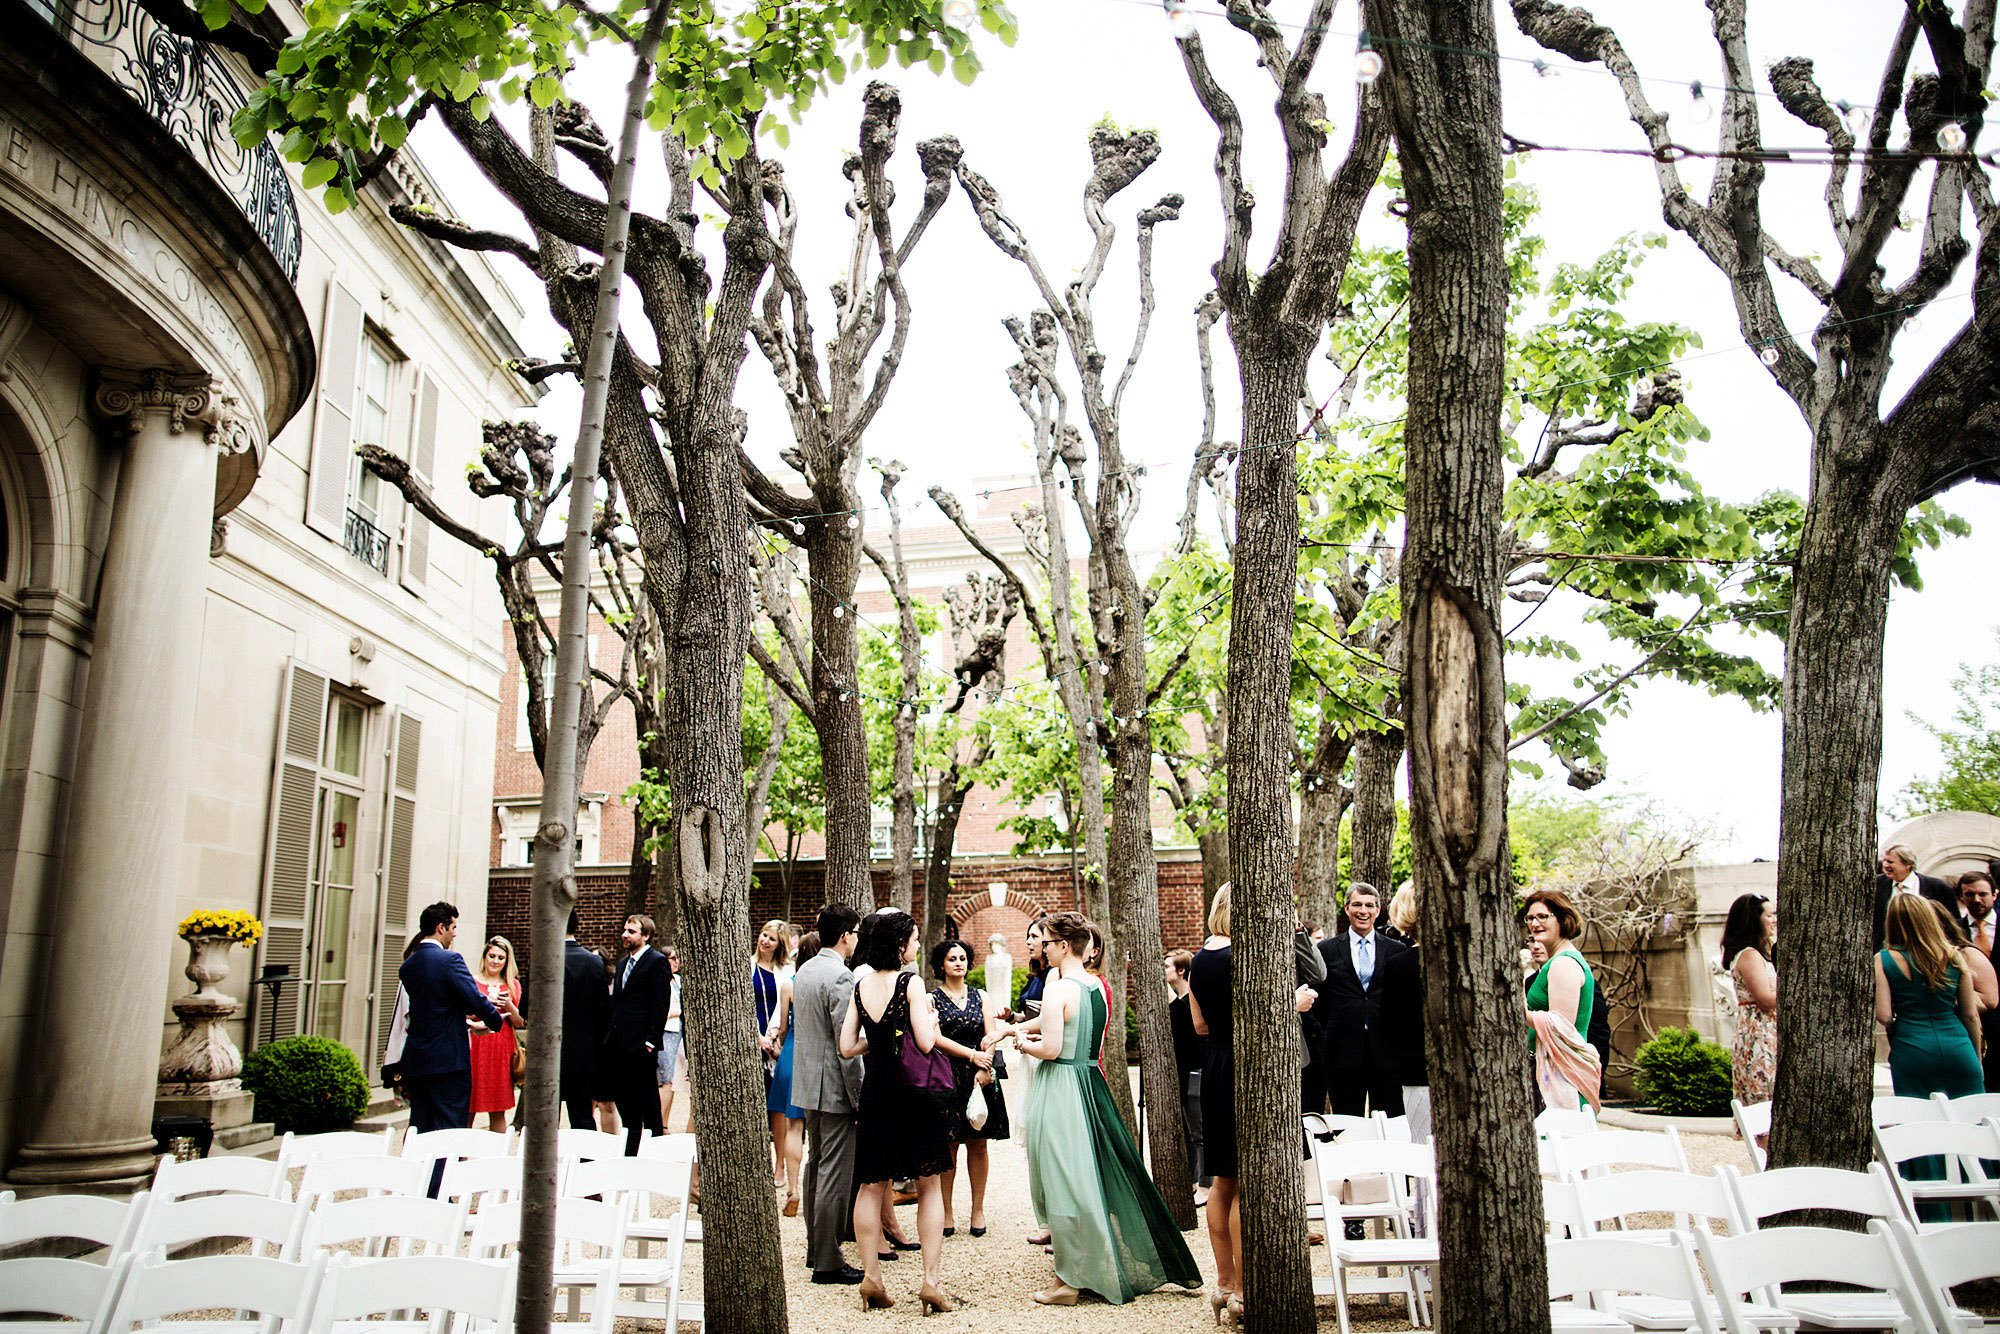 Guests enjoy cocktail hour during this Meridian House wedding in Washington, DC